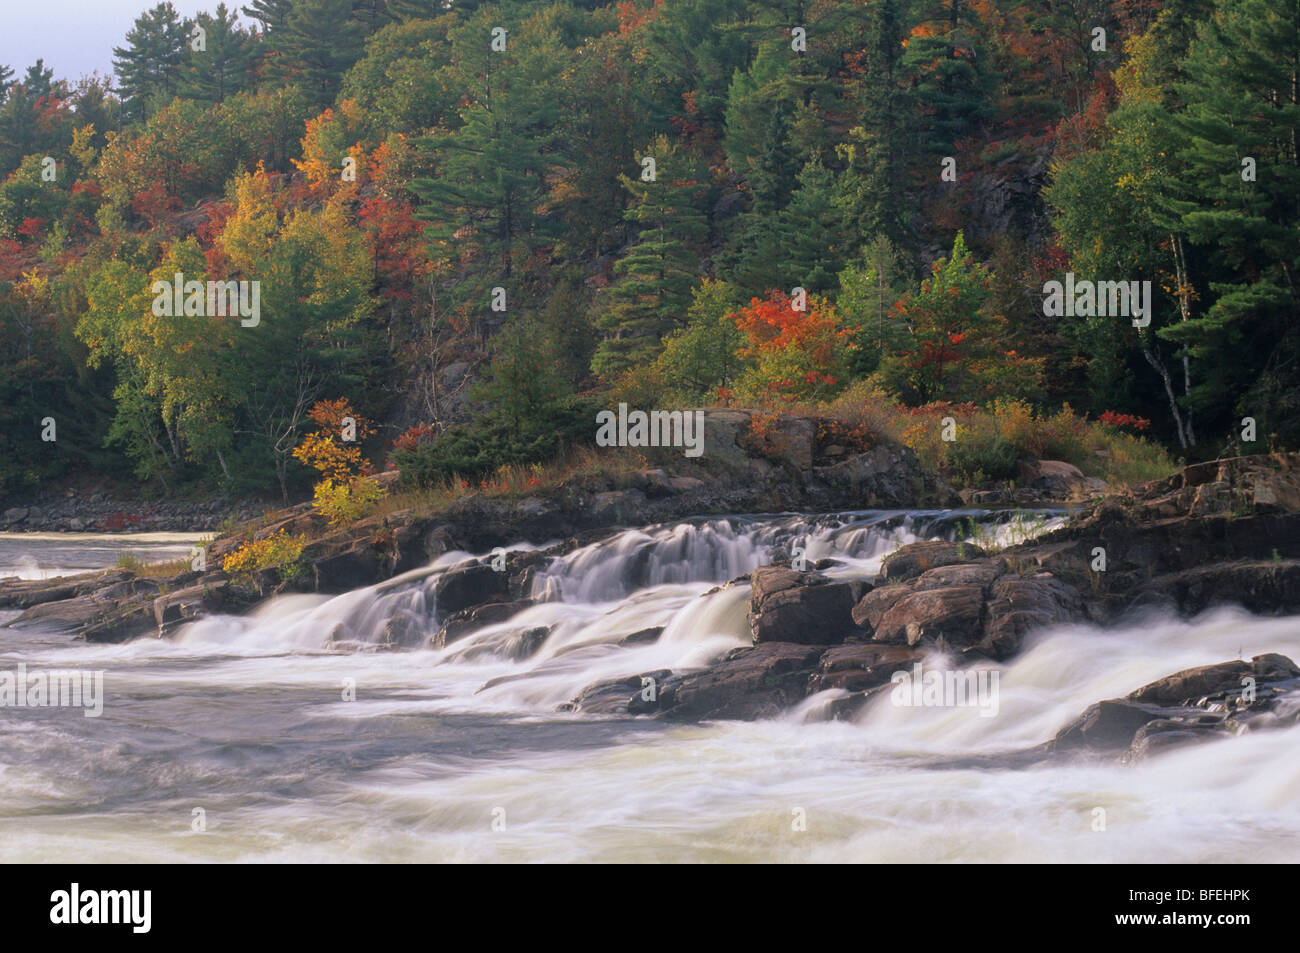 Autumn scenic, Recollect Falls, French River, south of Sudbury, Ontario, Canada - Stock Image